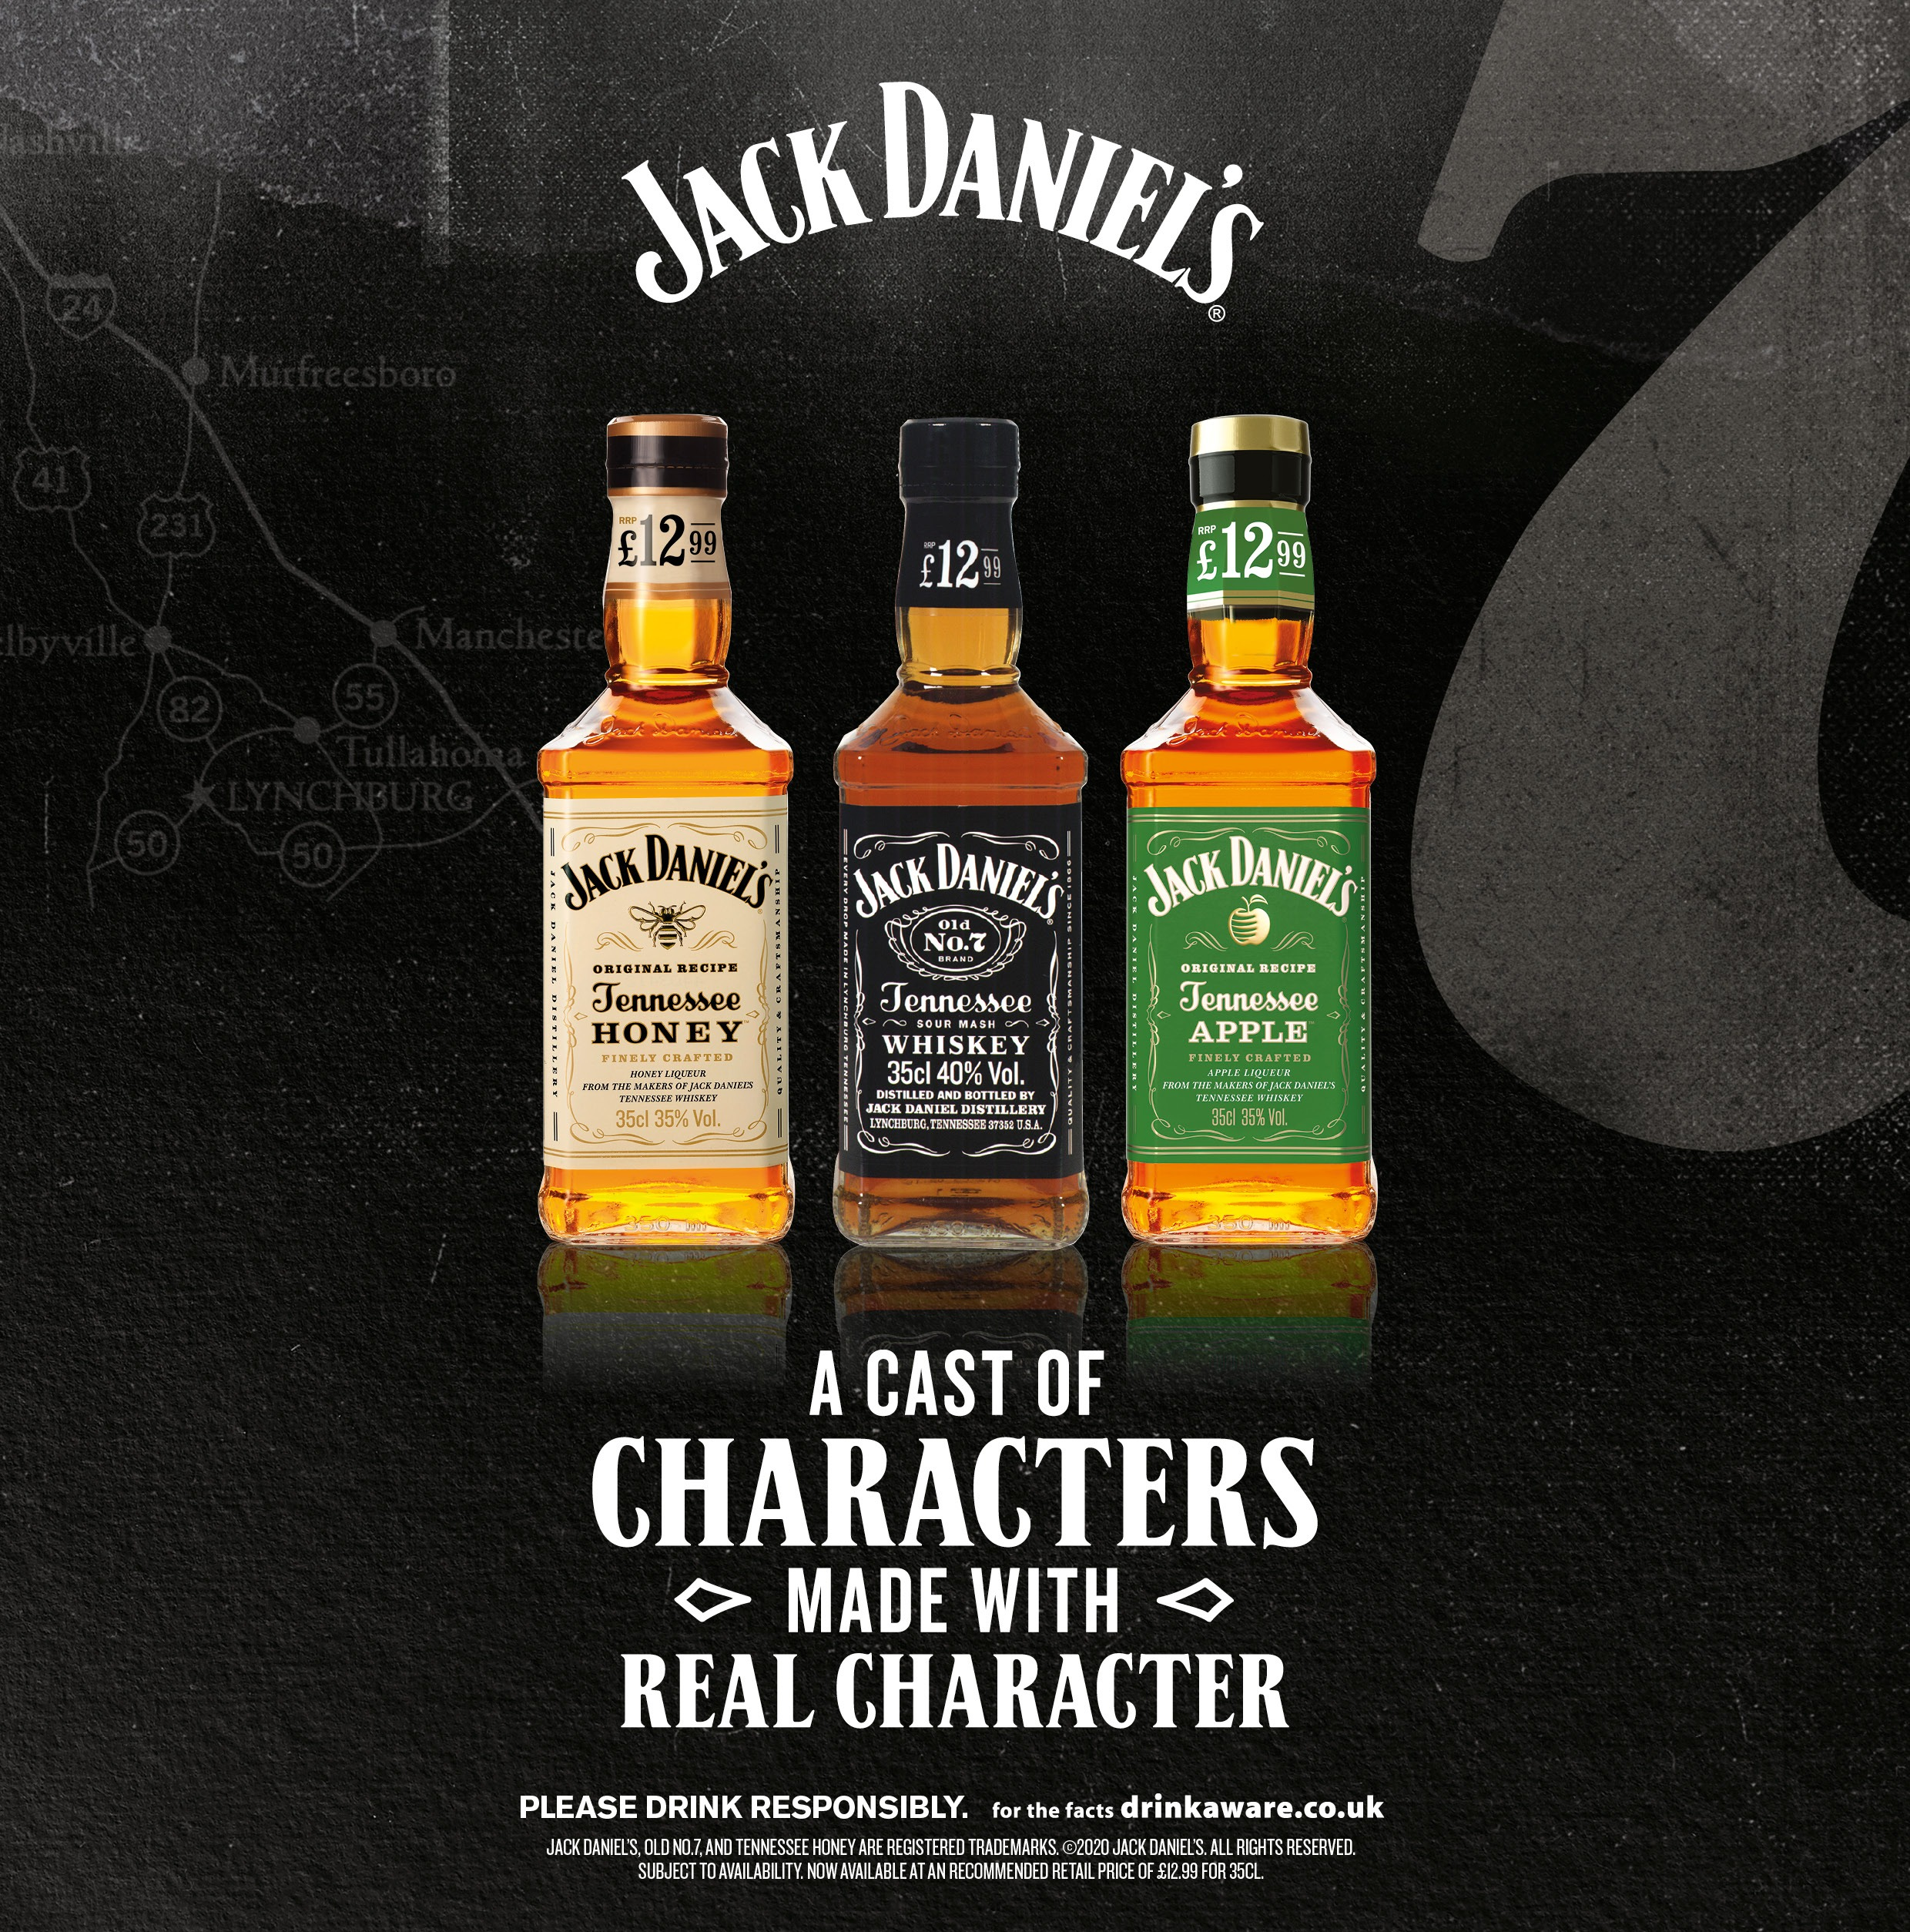 jack daniels a cast of characters made with real character